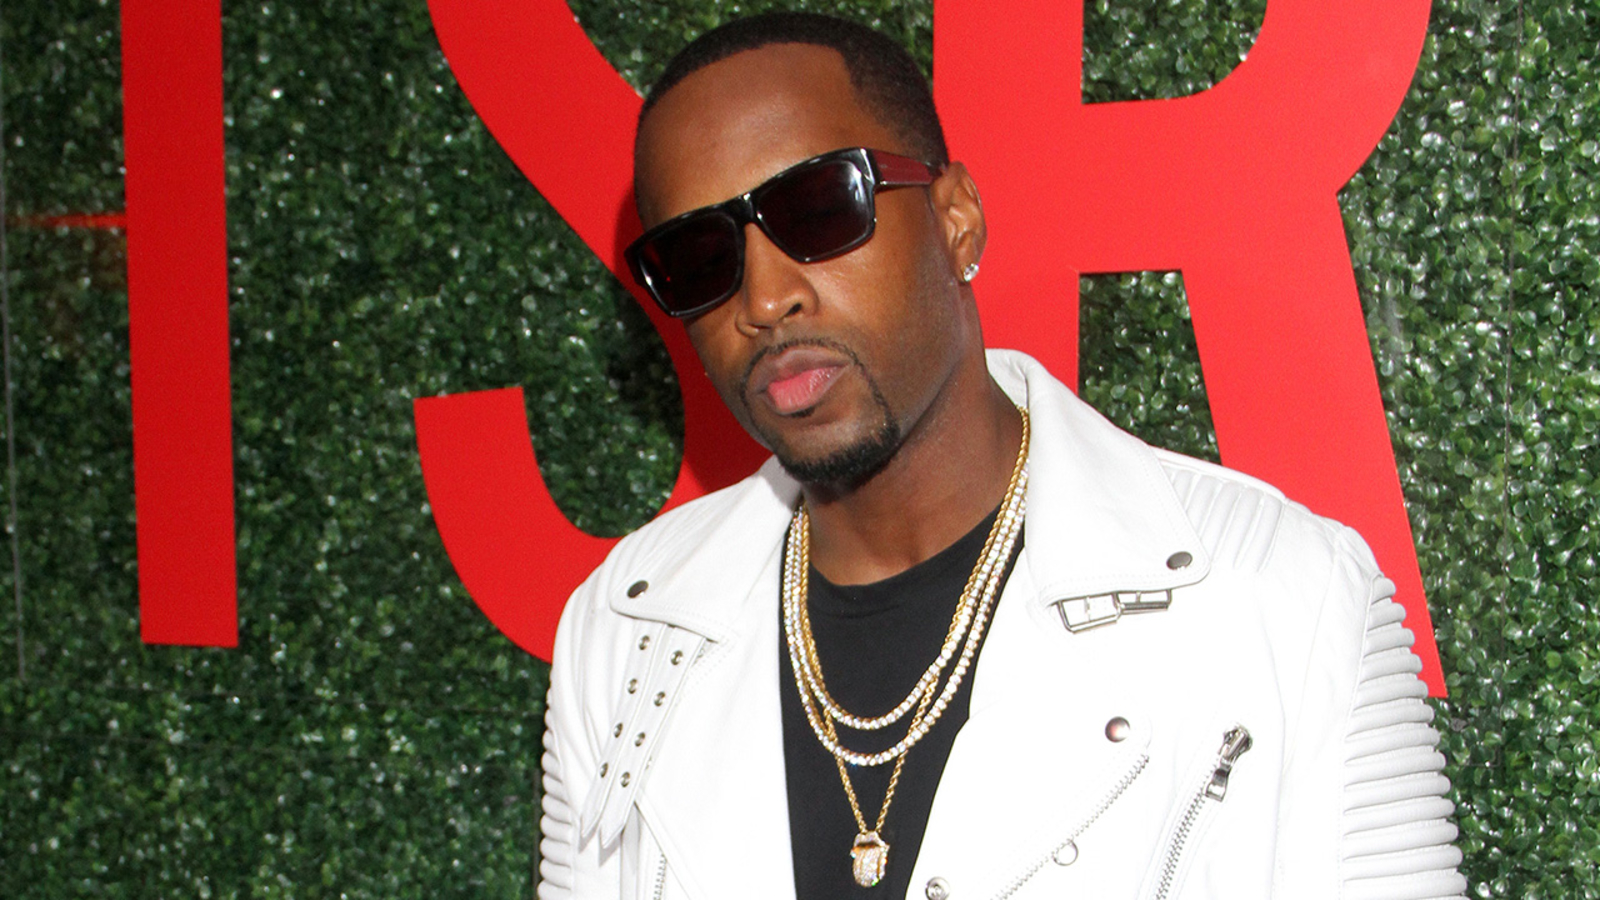 safaree-wishes-a-happy-birthday-to-an-important-friend-see-his-message